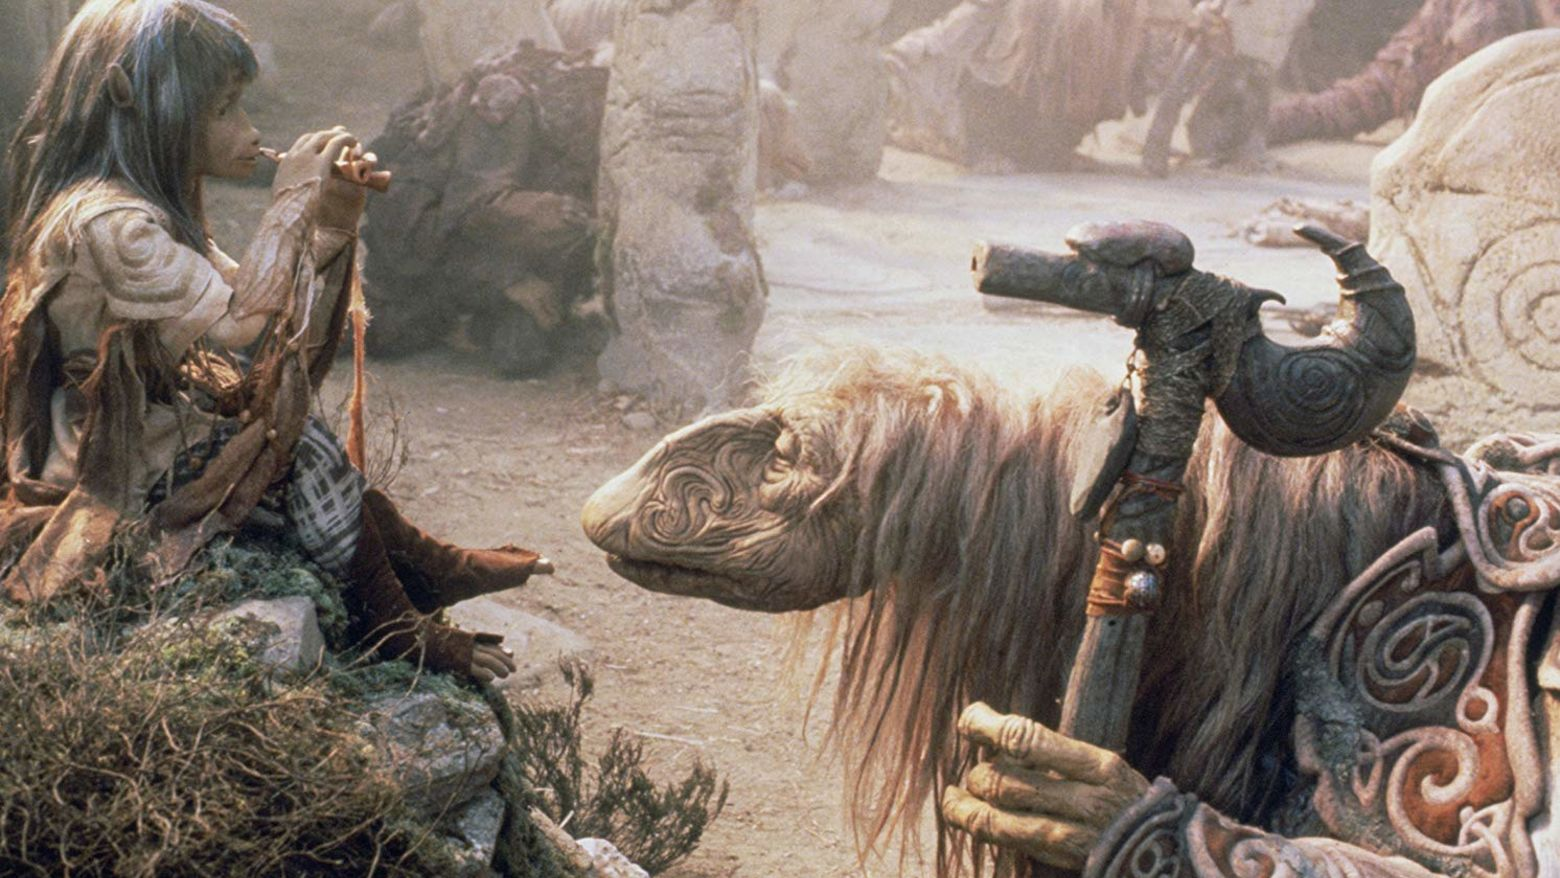 Family Flicks Film Series: The Dark Crystal | Hammer Museum